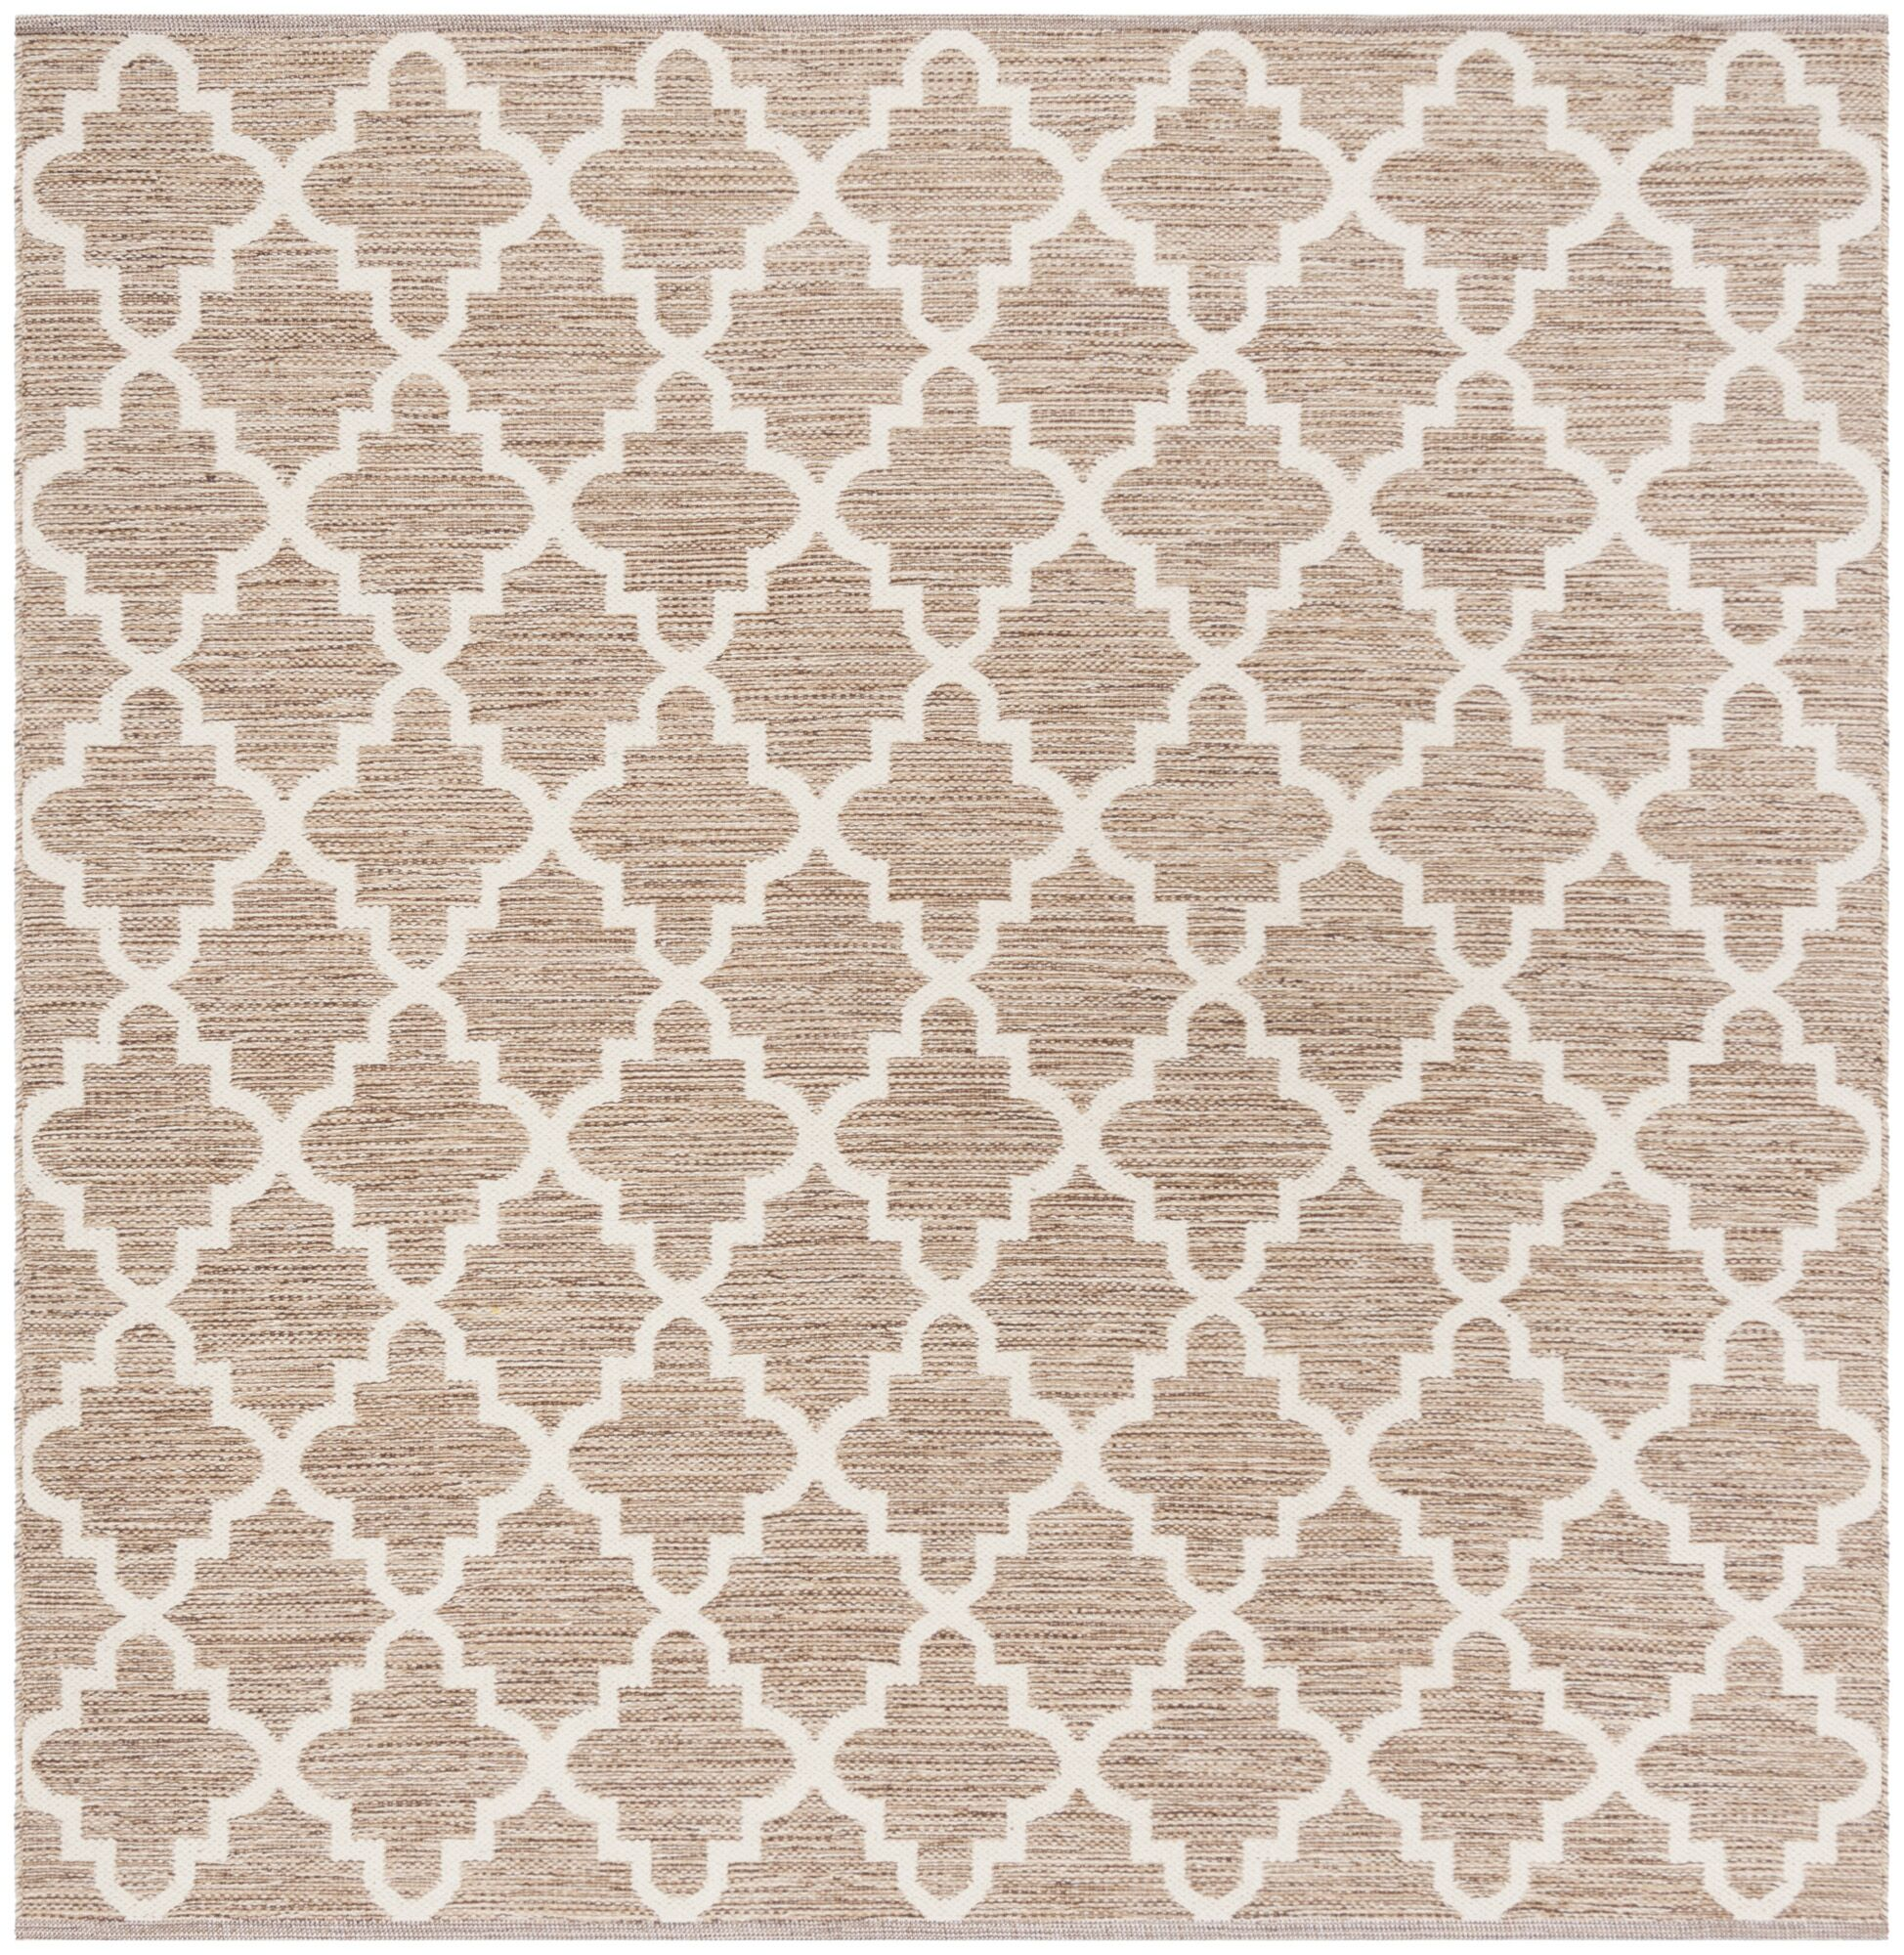 Eberhardt Hand-Woven Beige/Ivory Area Rug Rug Size: Square 6'